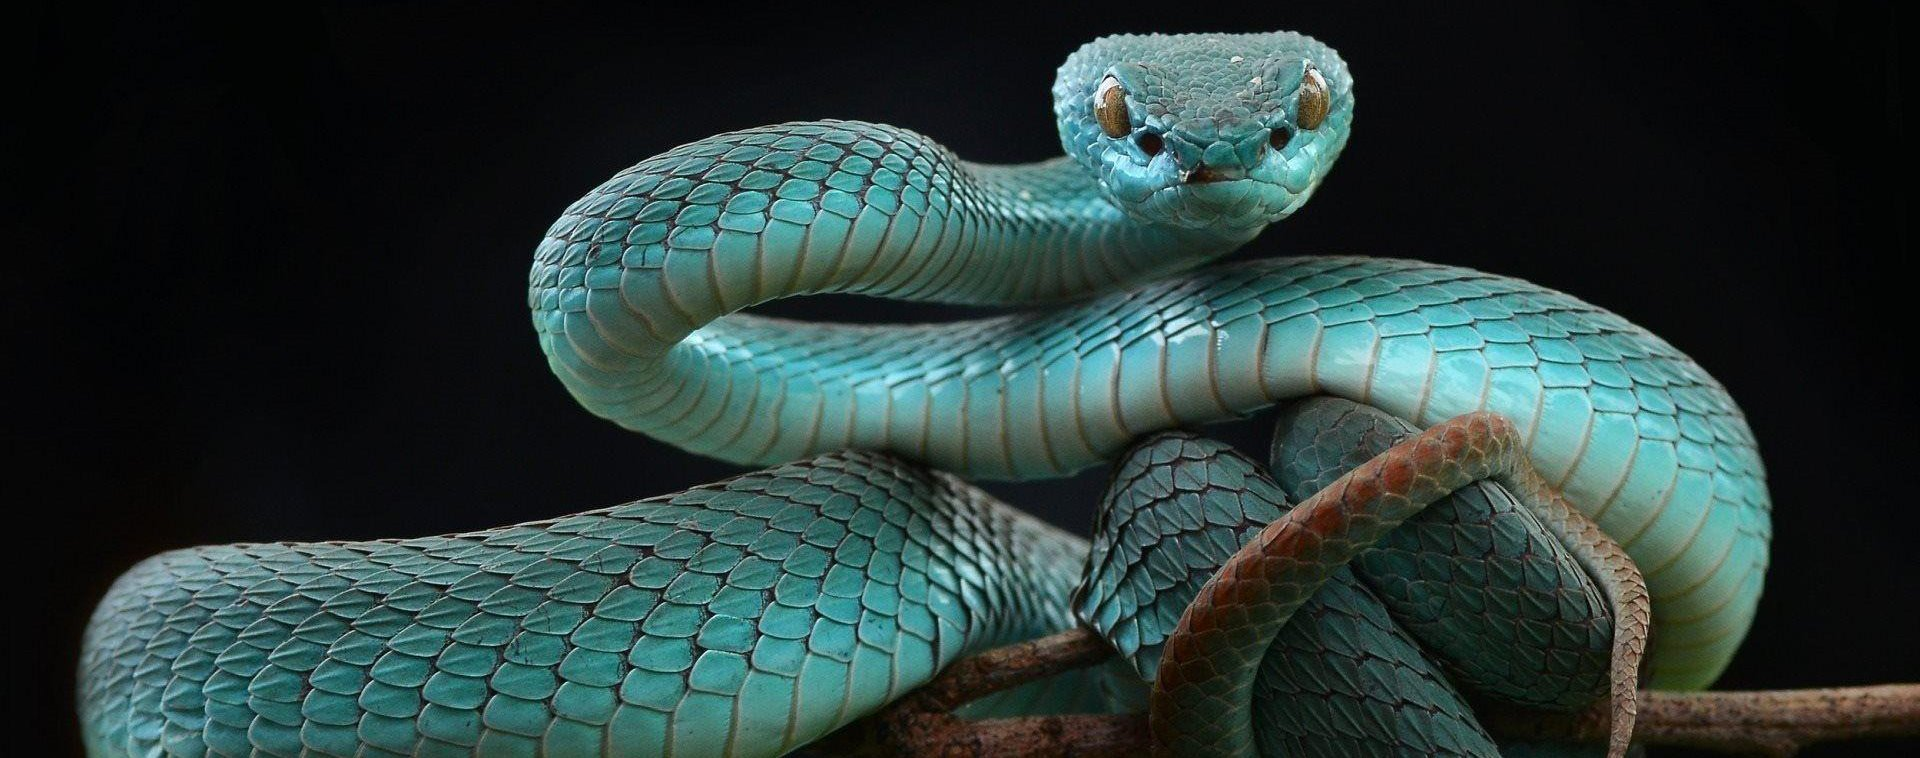 Blue Snake Dreams in Islam